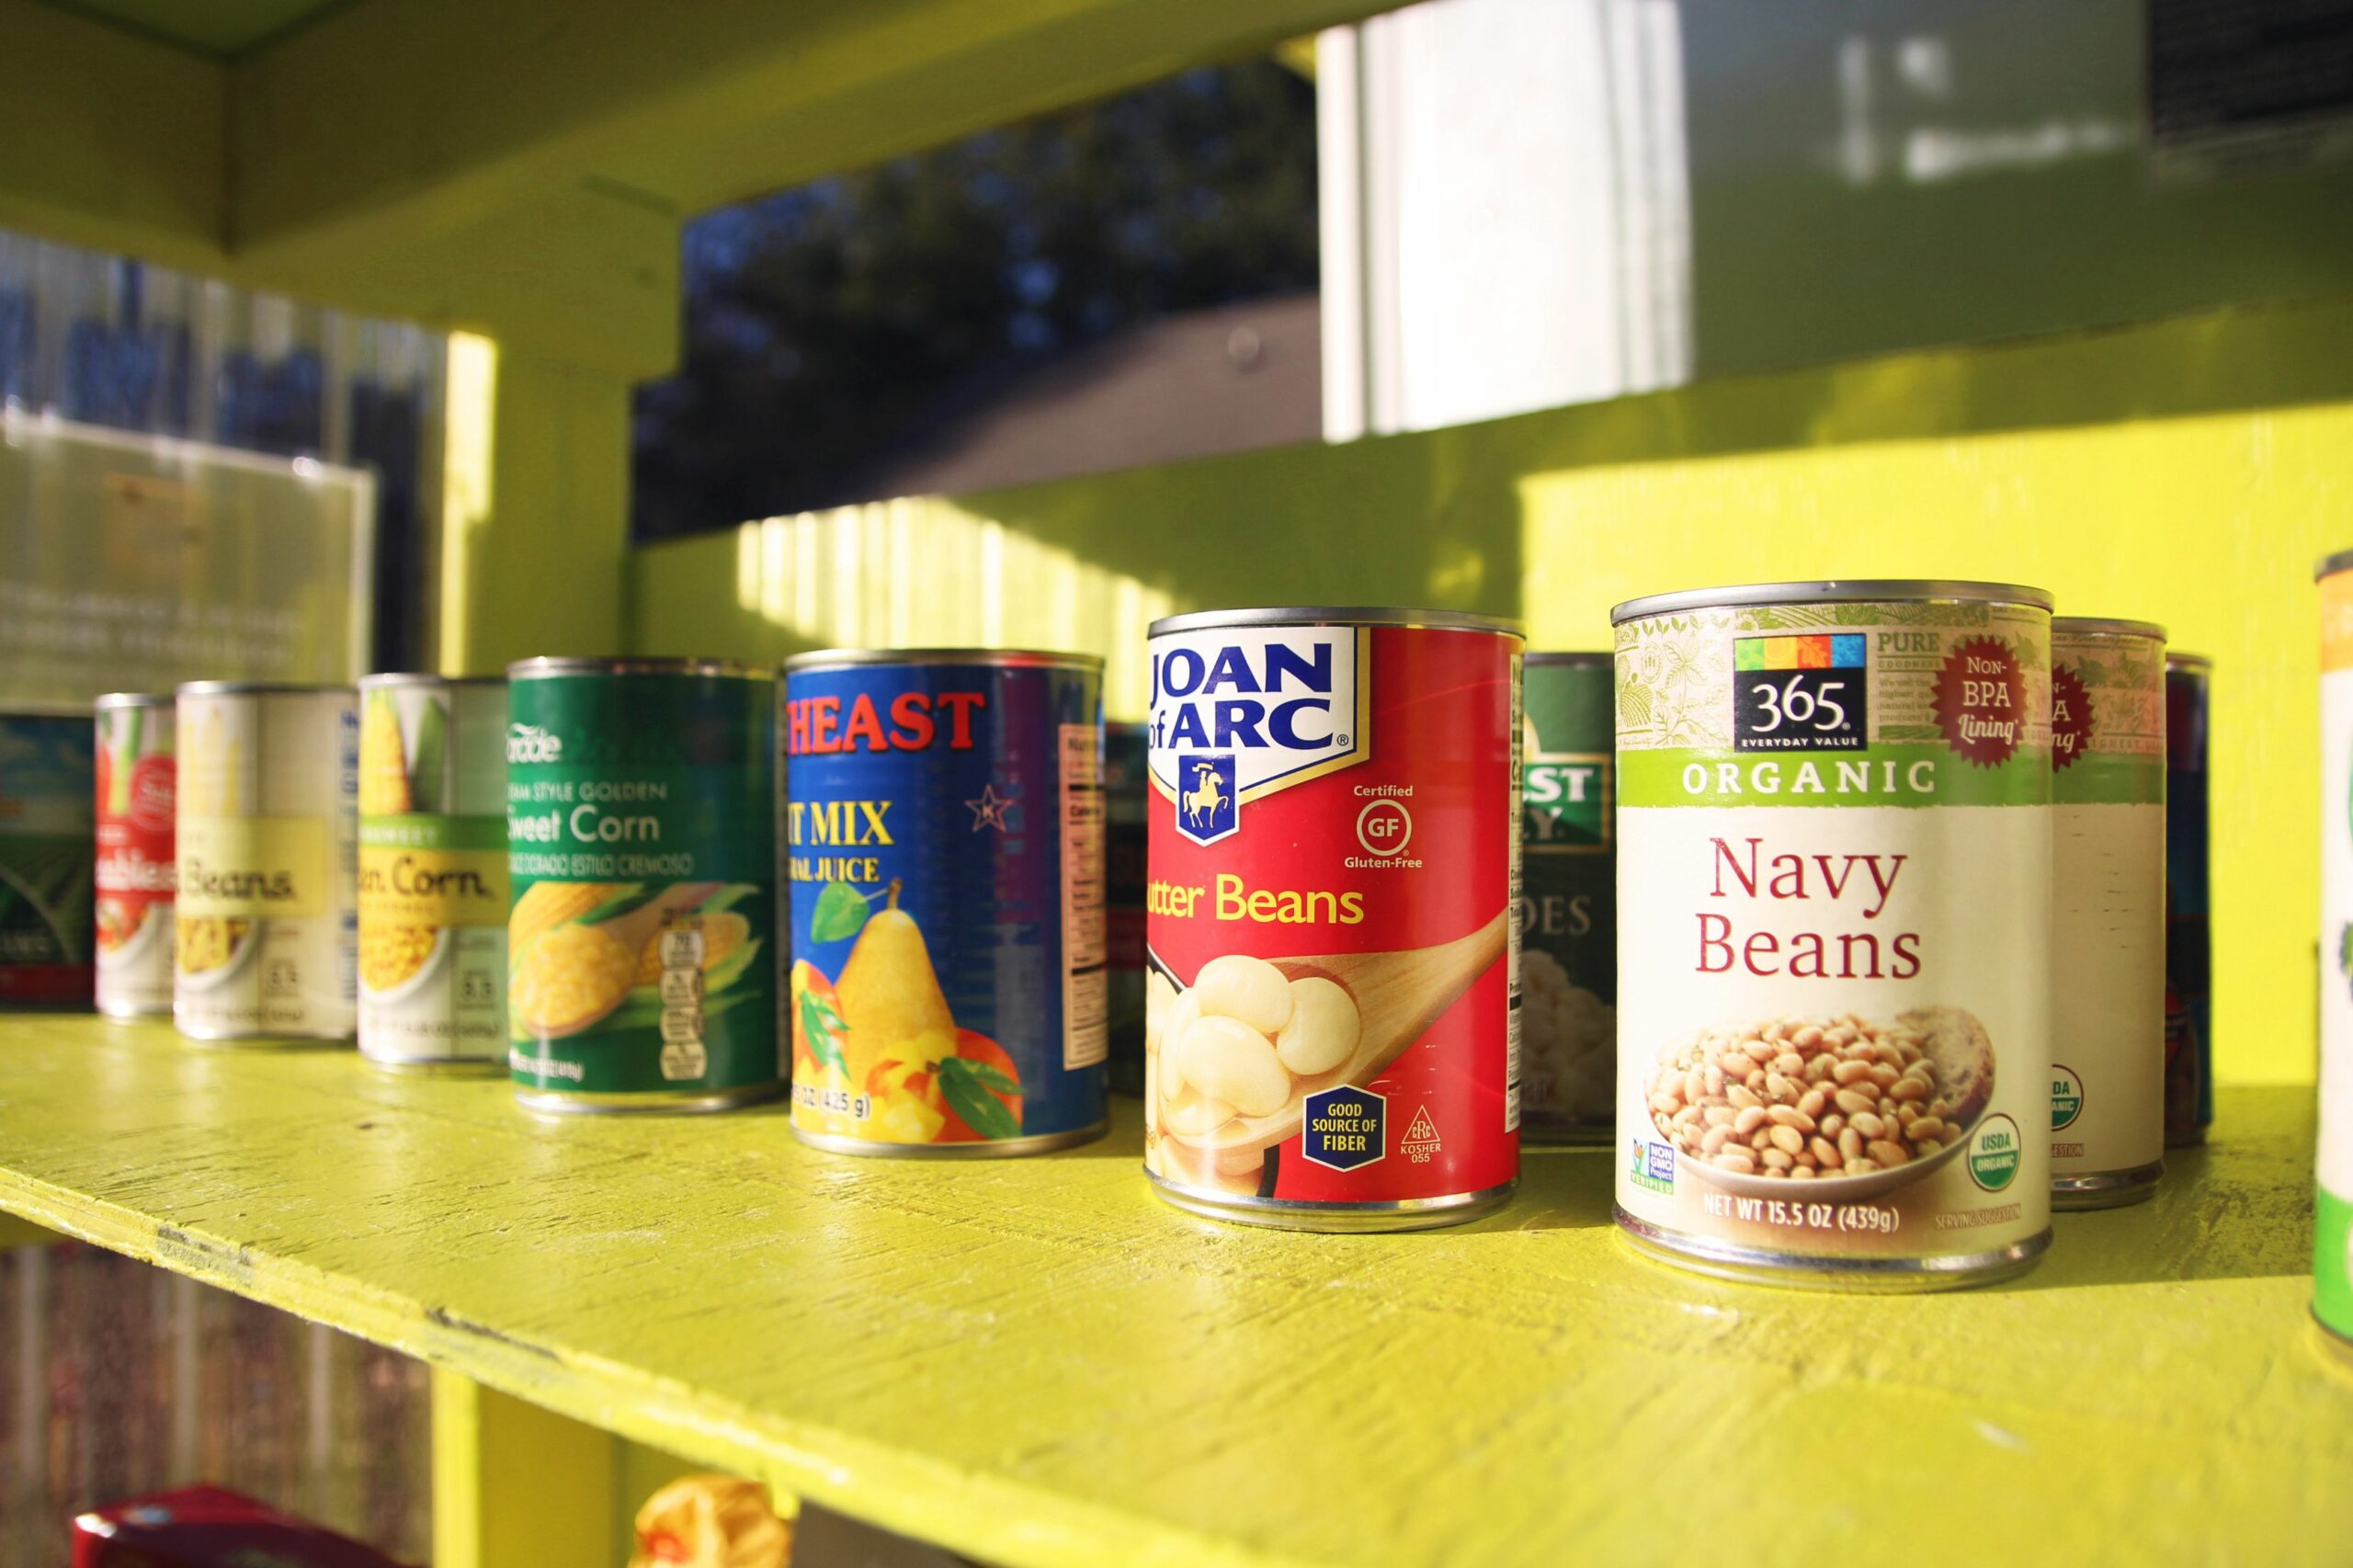 A neat set of canned foods sits in a pantry. There are Navy beans, buttoer beans, and sweet corn visible.